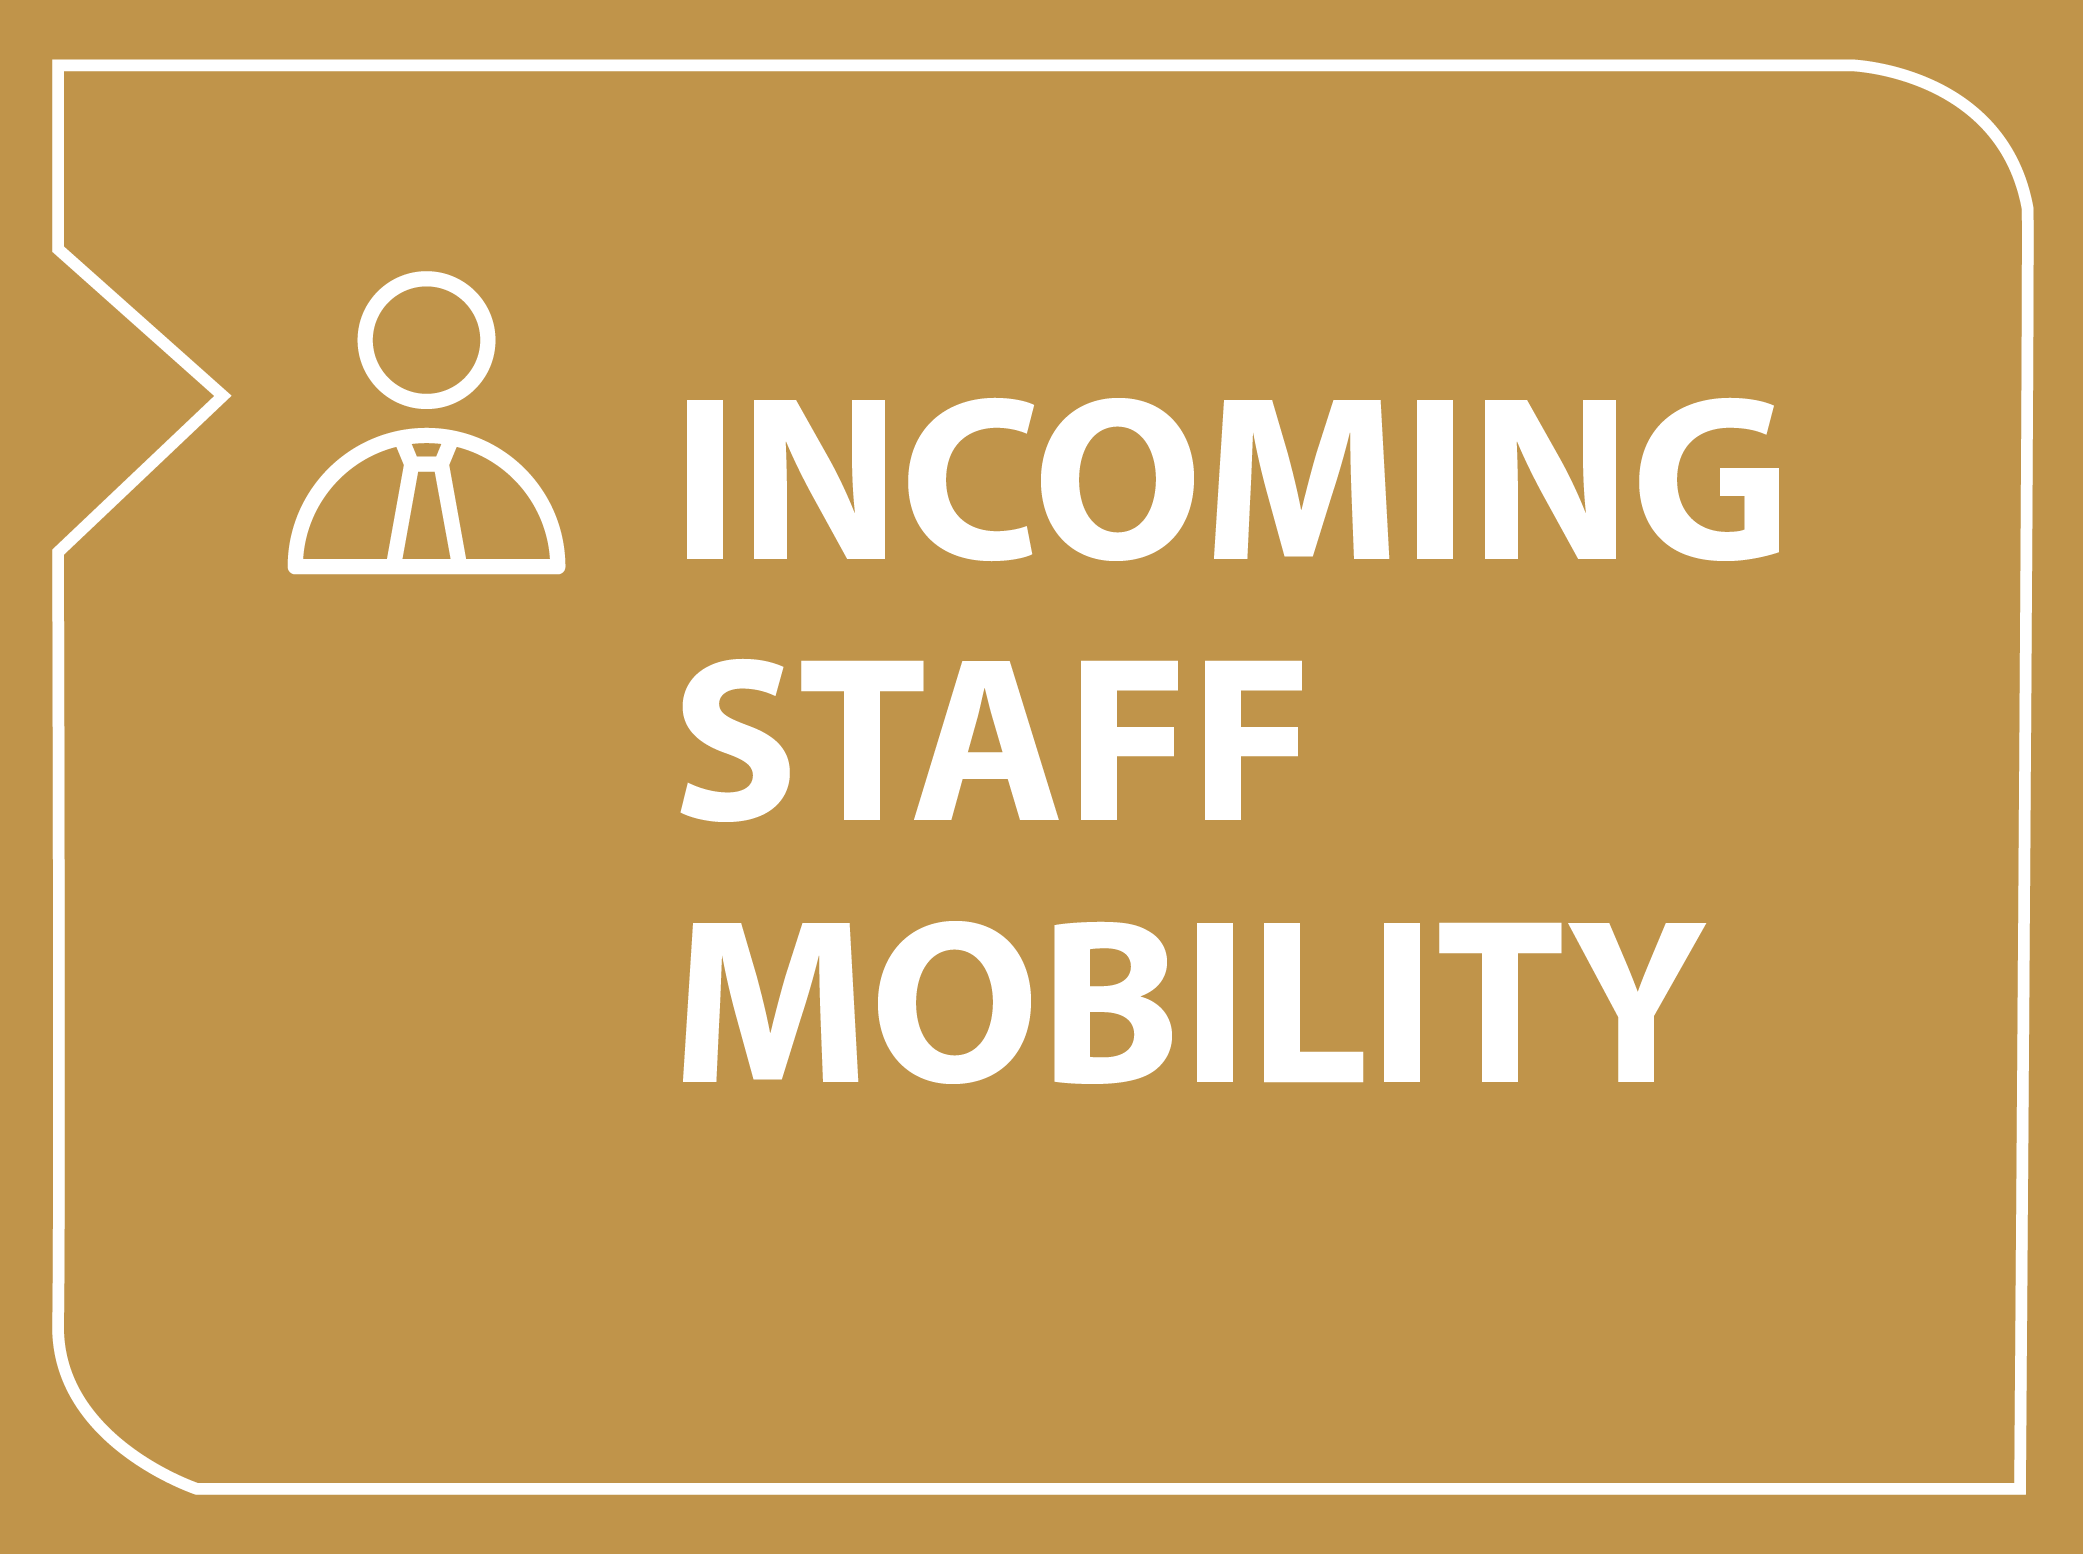 incoming_staff_mobility-02